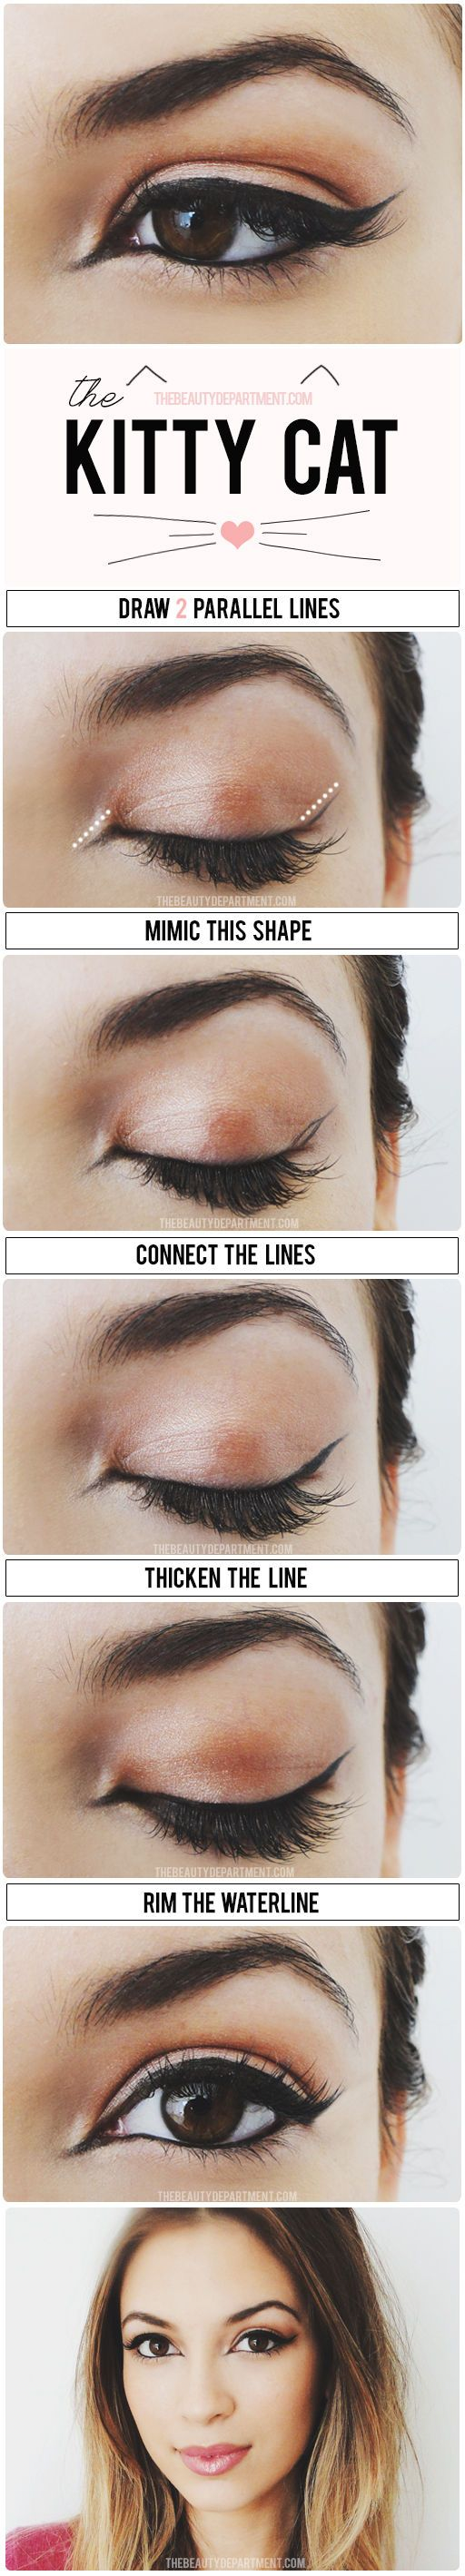 Pin by jade buxton on beauty pinterest cat eyes eye and kitty